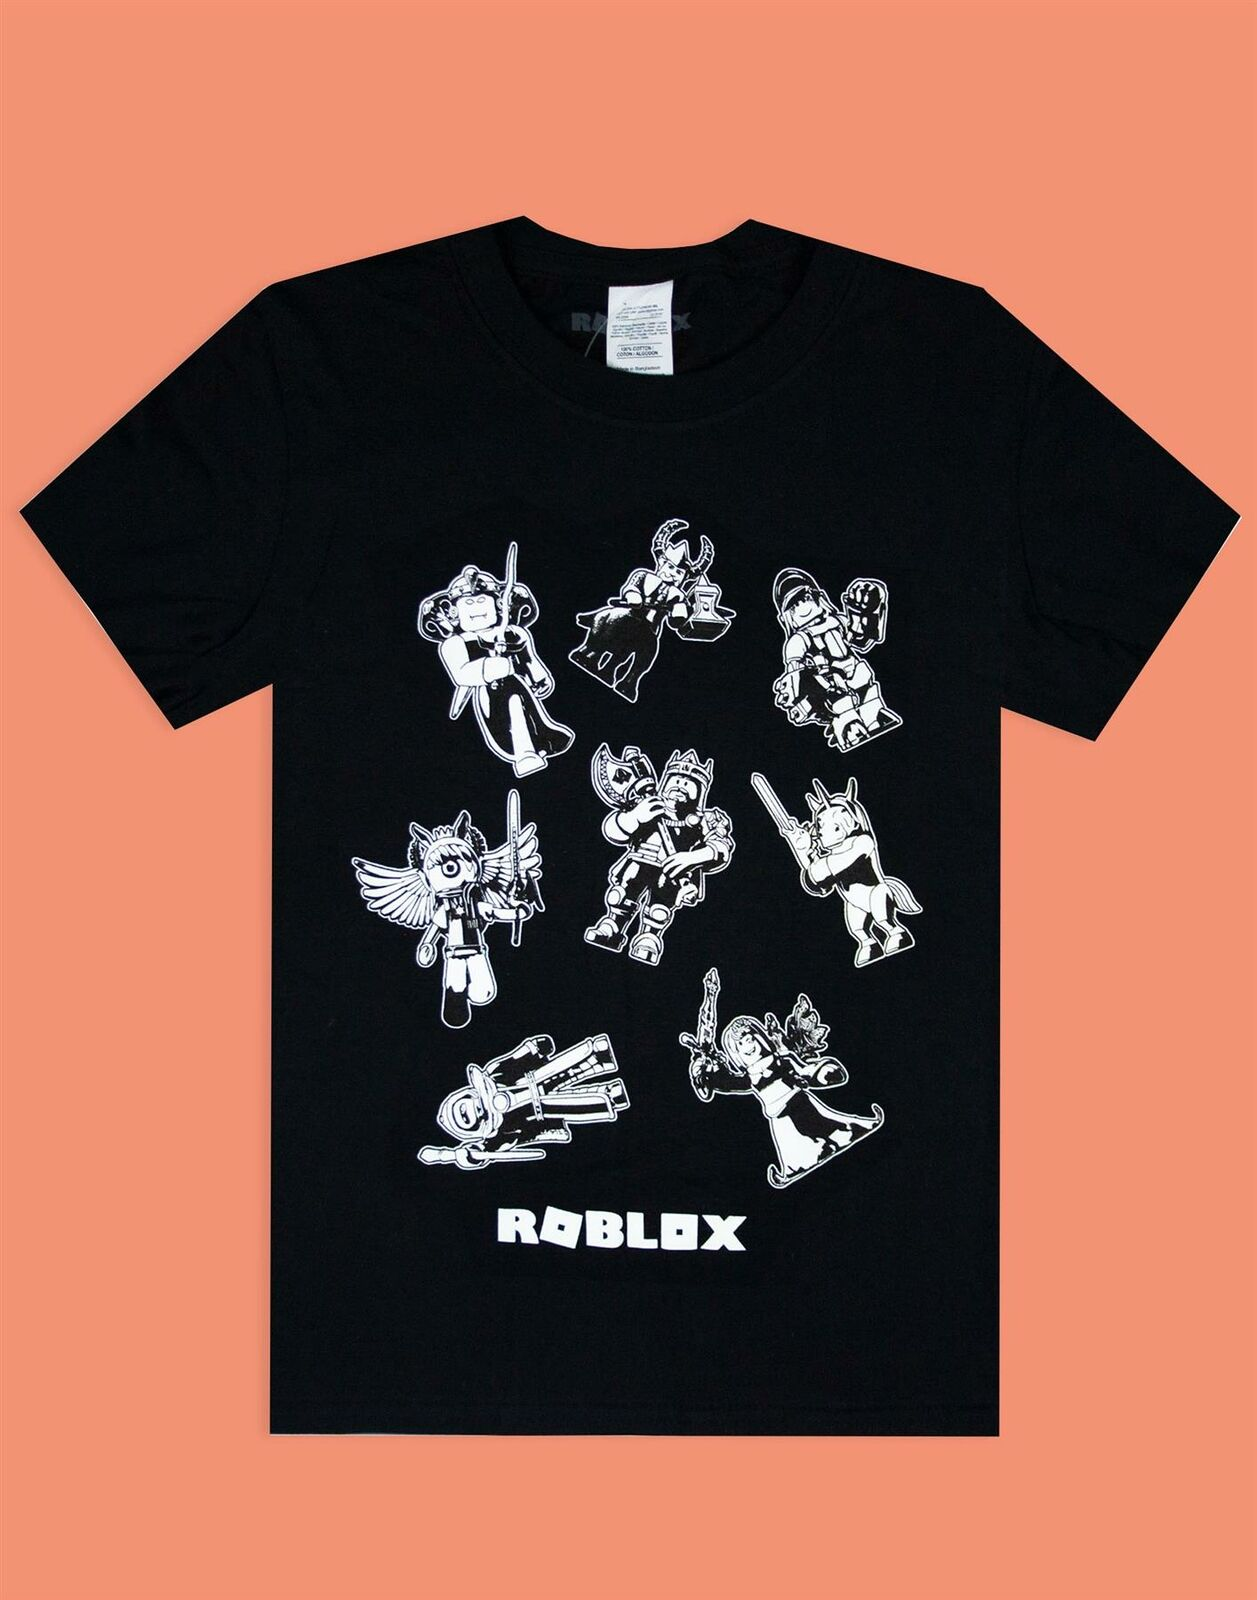 Roblox-Characters-In-Space-Kid-039-s-Black-T-Shirt-Short-Sleeve-Gamer-039-s-Tee thumbnail 8